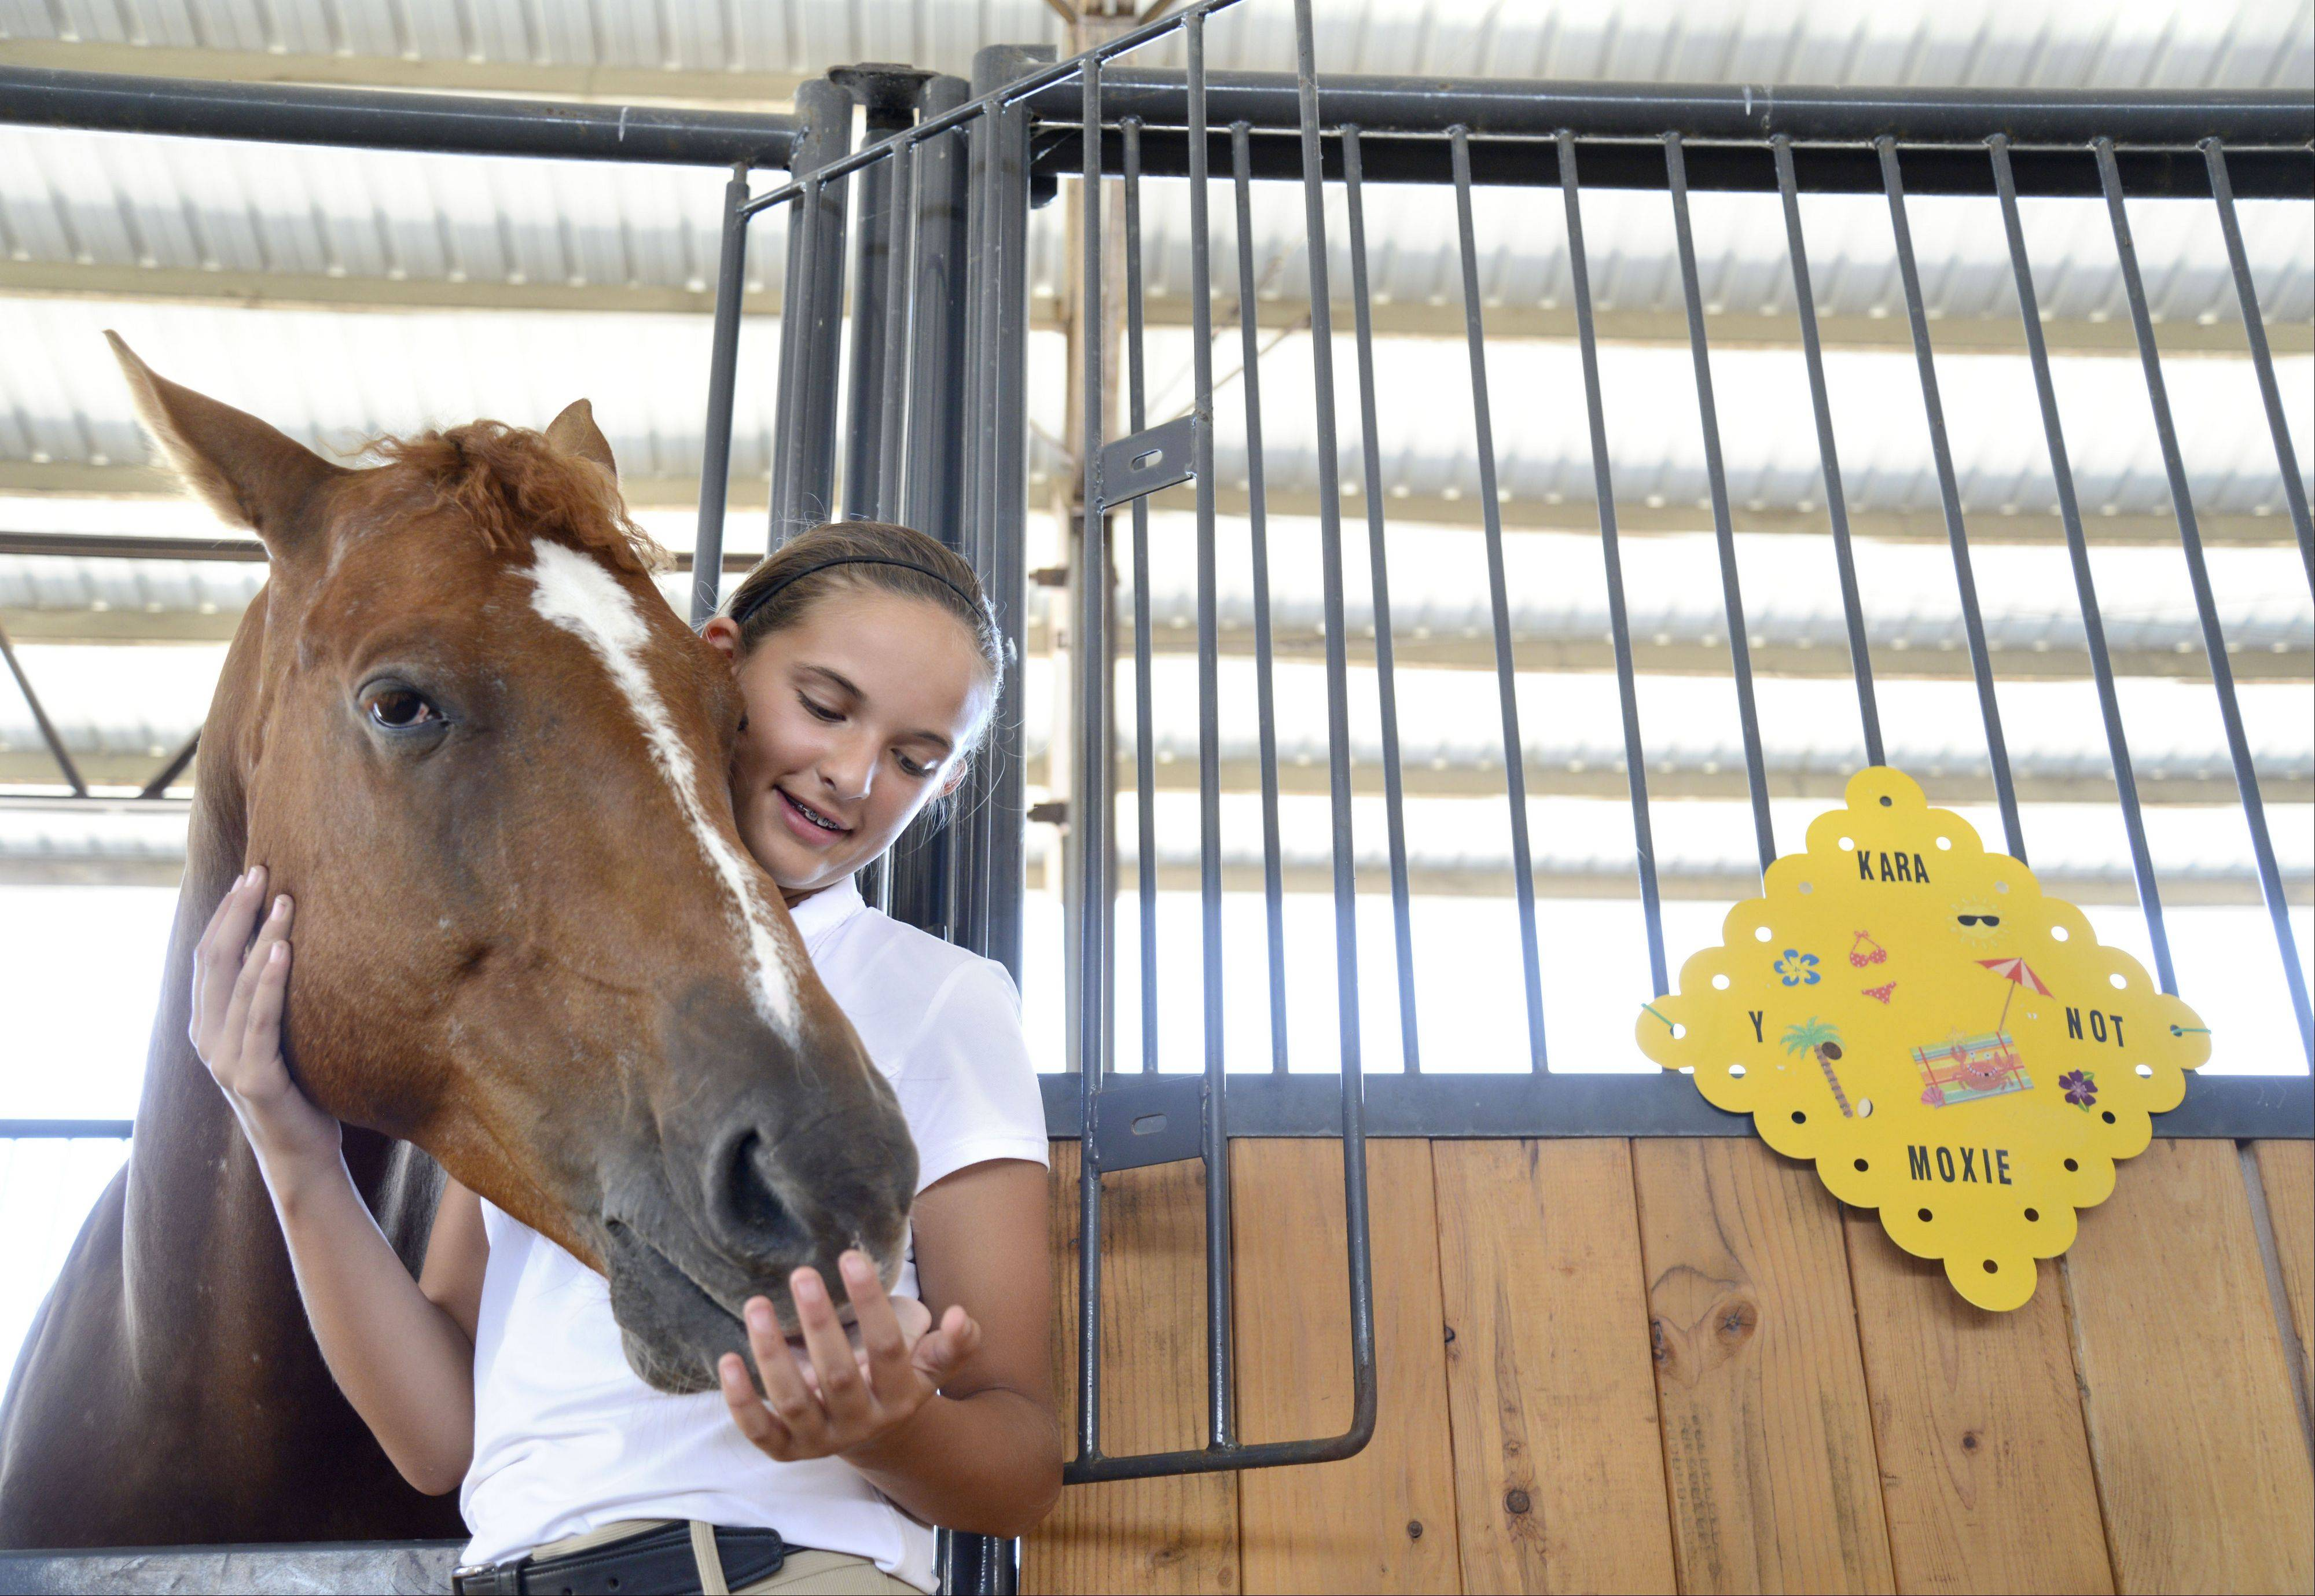 Carli Niesel, 13, of Elgin, cuddles with her horse, Pony, after giving him treats on Saturday at the Kane County Fair in St. Charles. Niesel, who is with the Y-Not 4-H club out of Maple Park, competed in dressage, flat classes and jumping earlier in the morning.